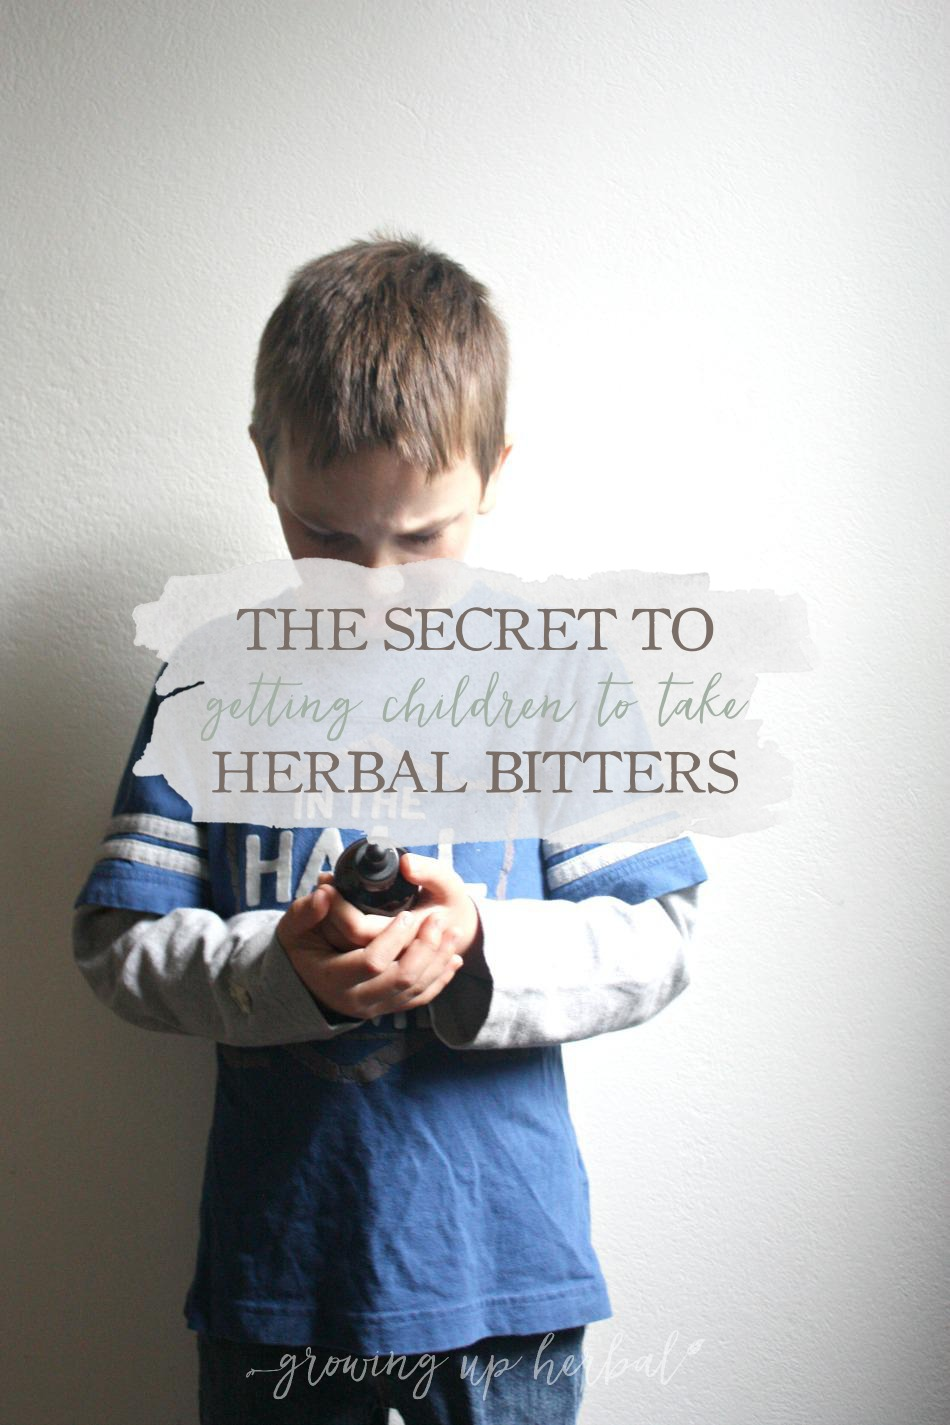 The Secret To Getting Children To Take Herbal Bitters | Growing Up Herbal | Bitters are great for digestive health, but it can be a struggle to get your kids to take them. This secret can help!